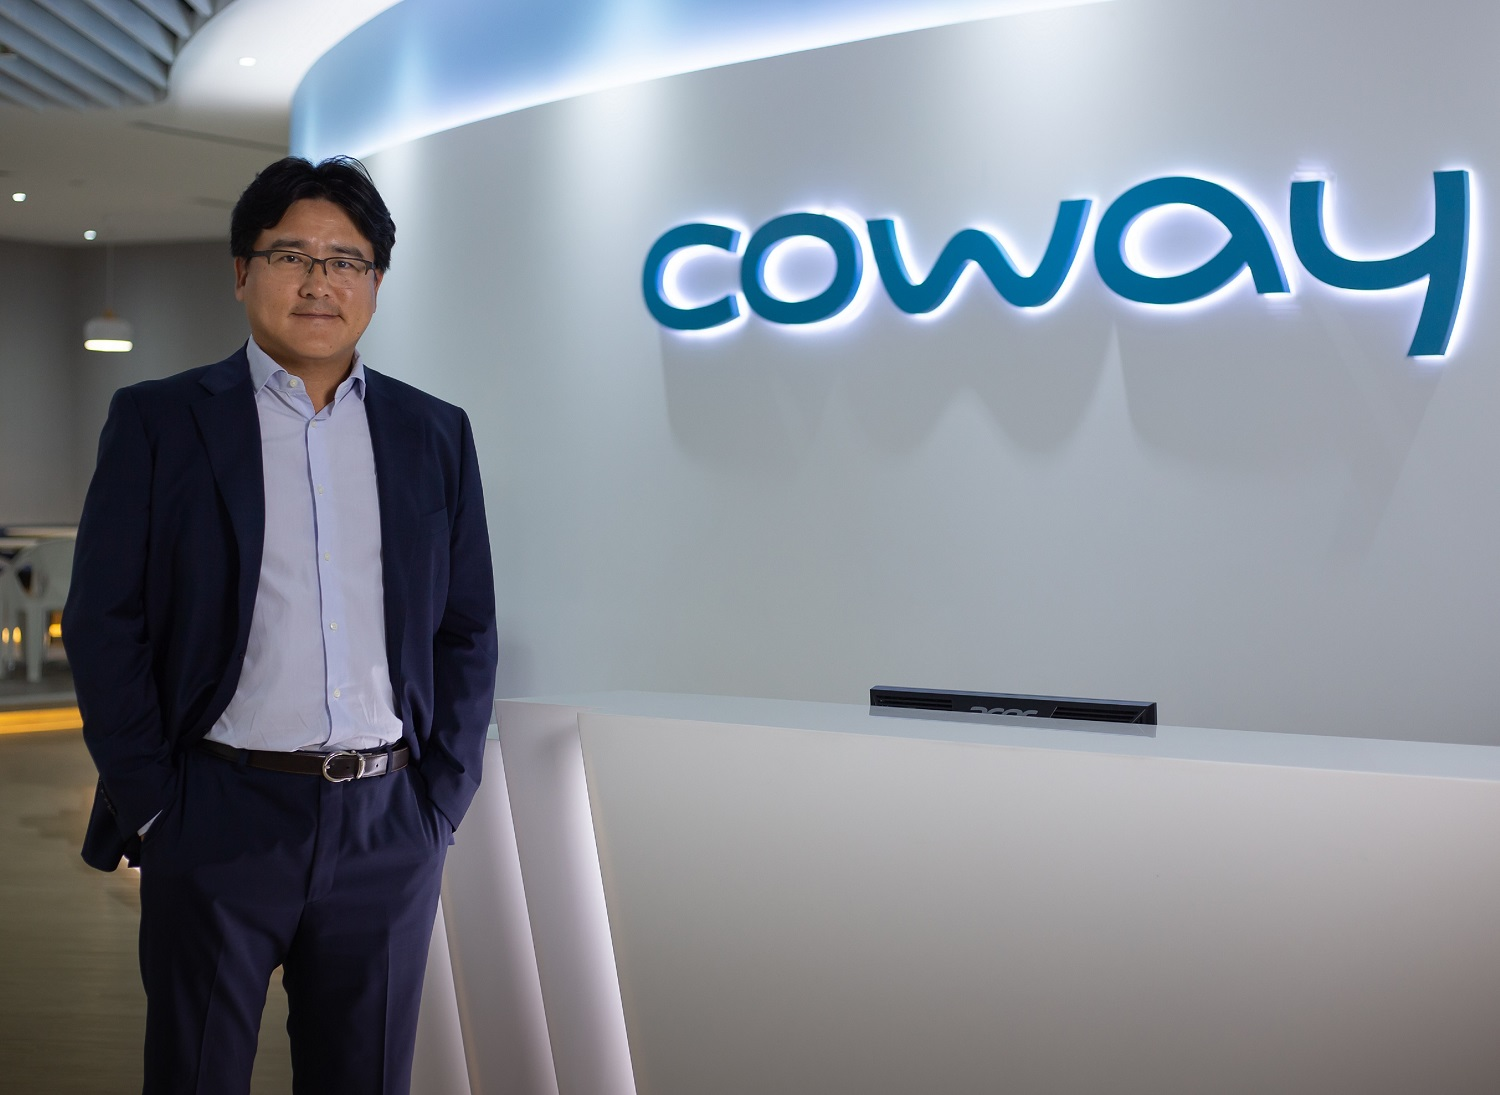 Coway Spreads Love Through 'Rasa Sayang' Campaign For Homes